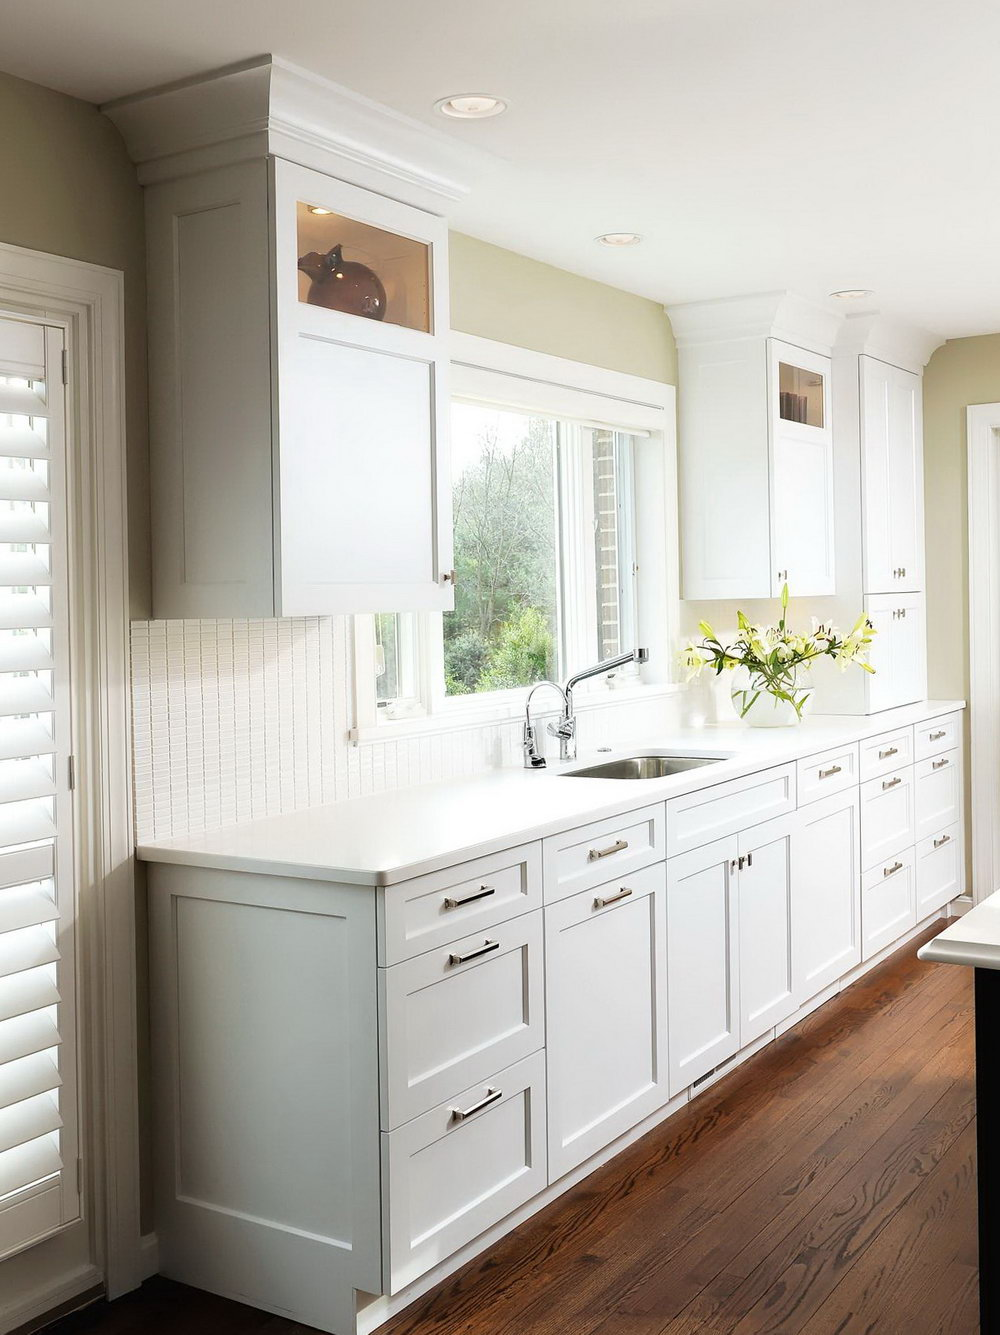 Can You Paint Kitchen Cabinets Without Removing Them